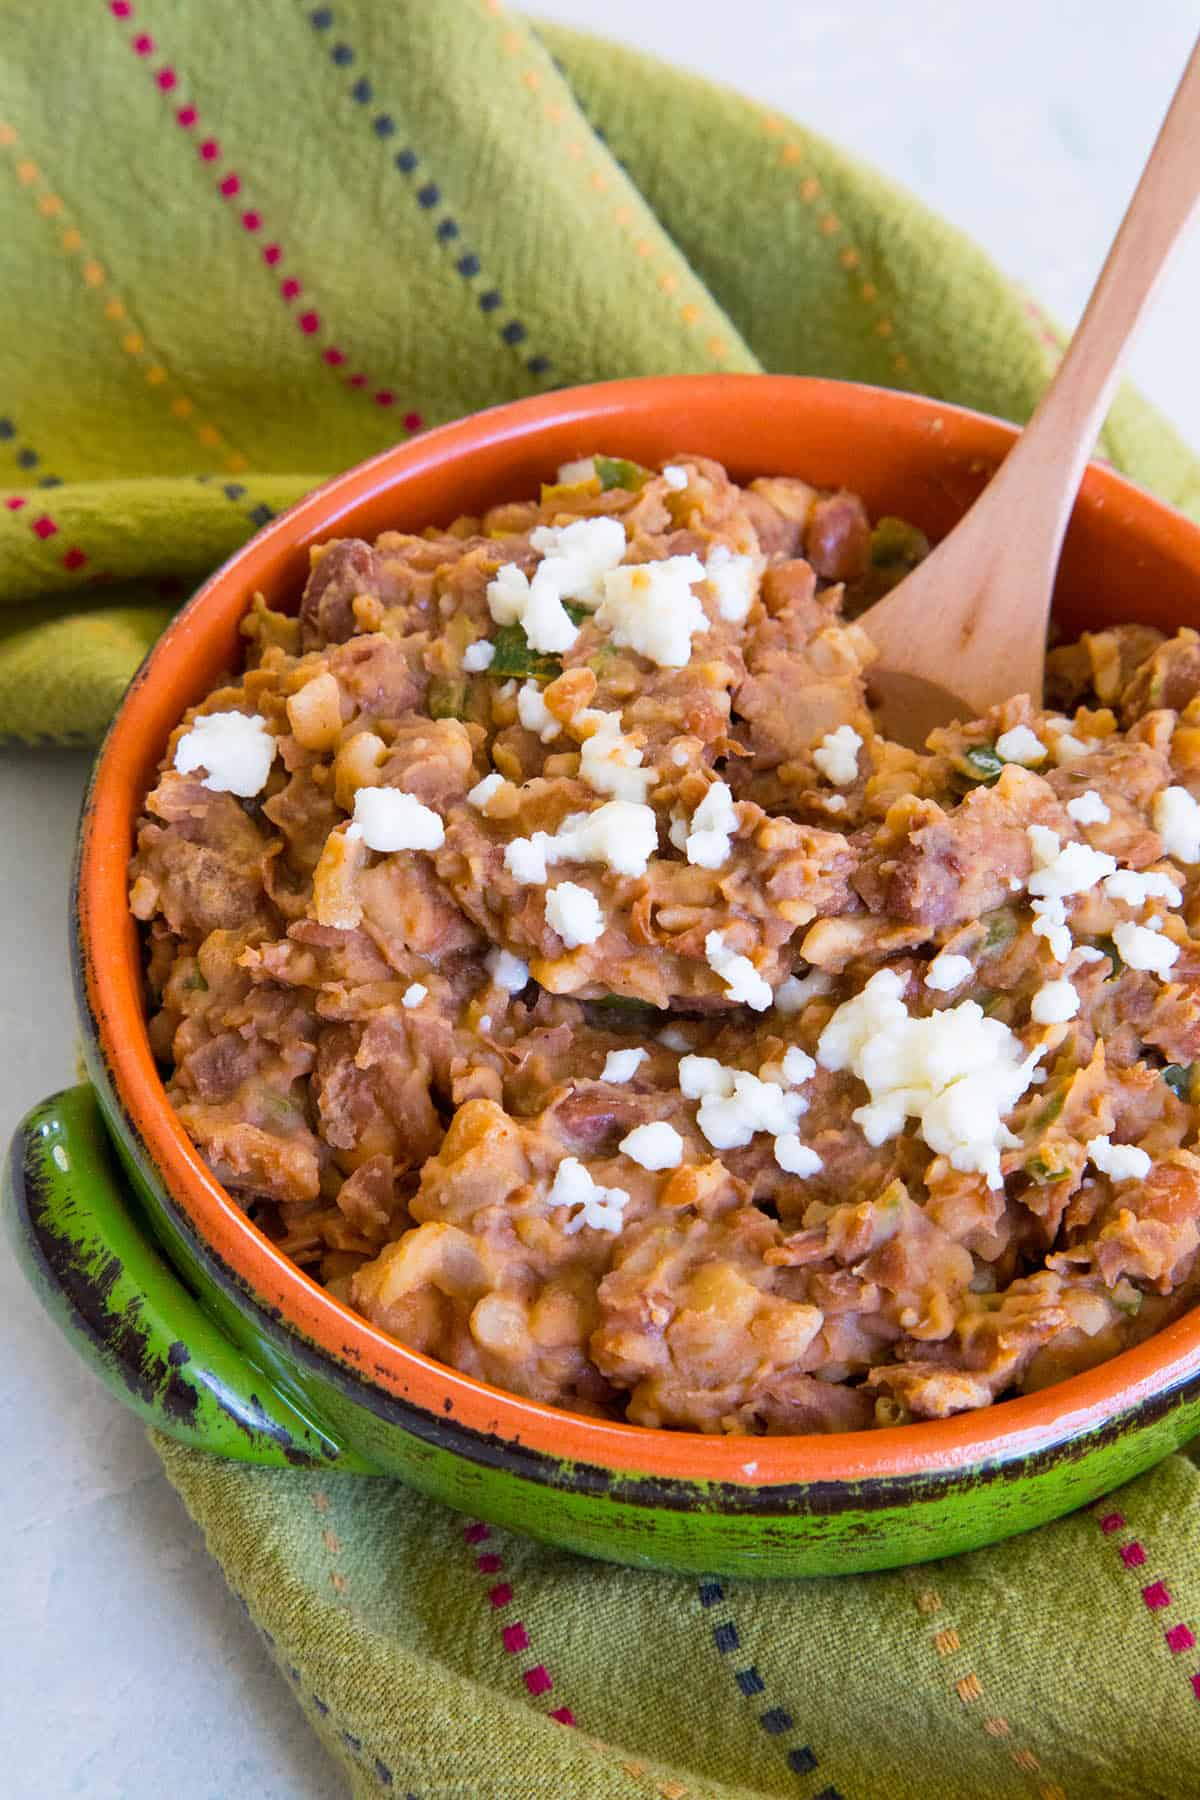 Easy Homemade Refried Beans Recipe